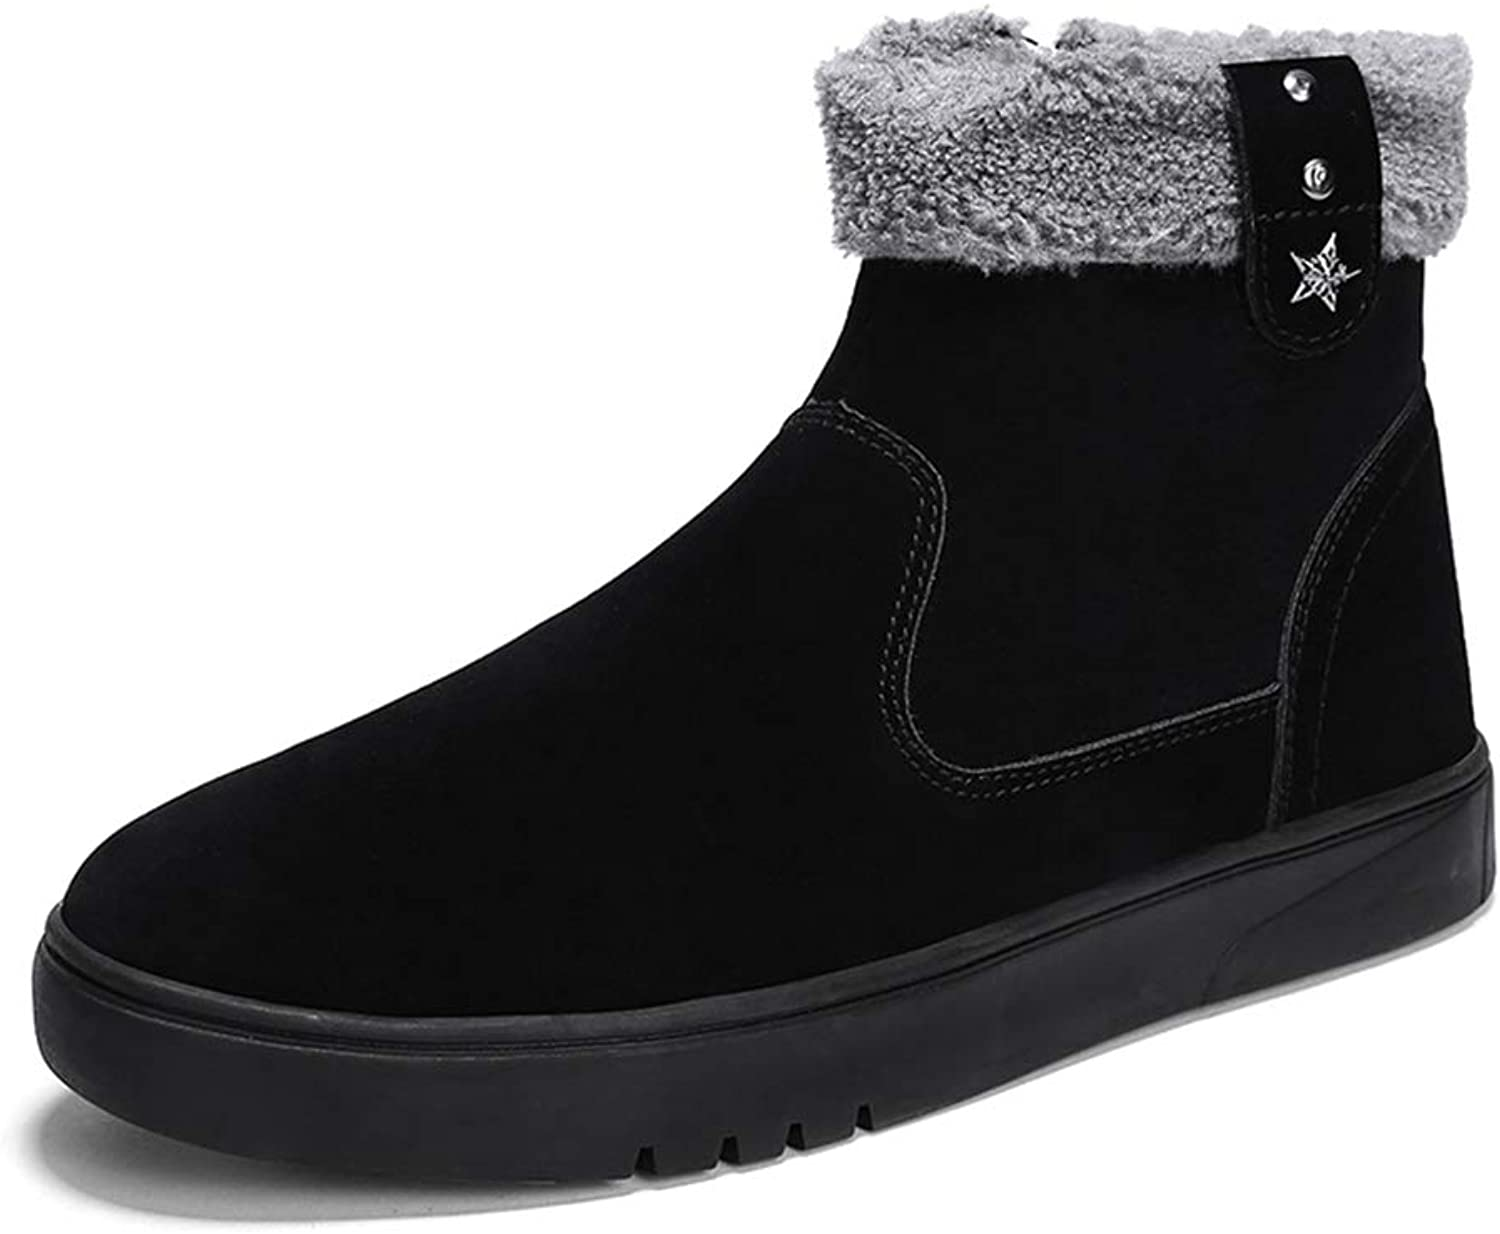 SRY-Fashion shoes Men's Stylish Snow Boots Warm shoes Casual Wrap Side Zipper Winter Faux Fleece Inside Menage shoes